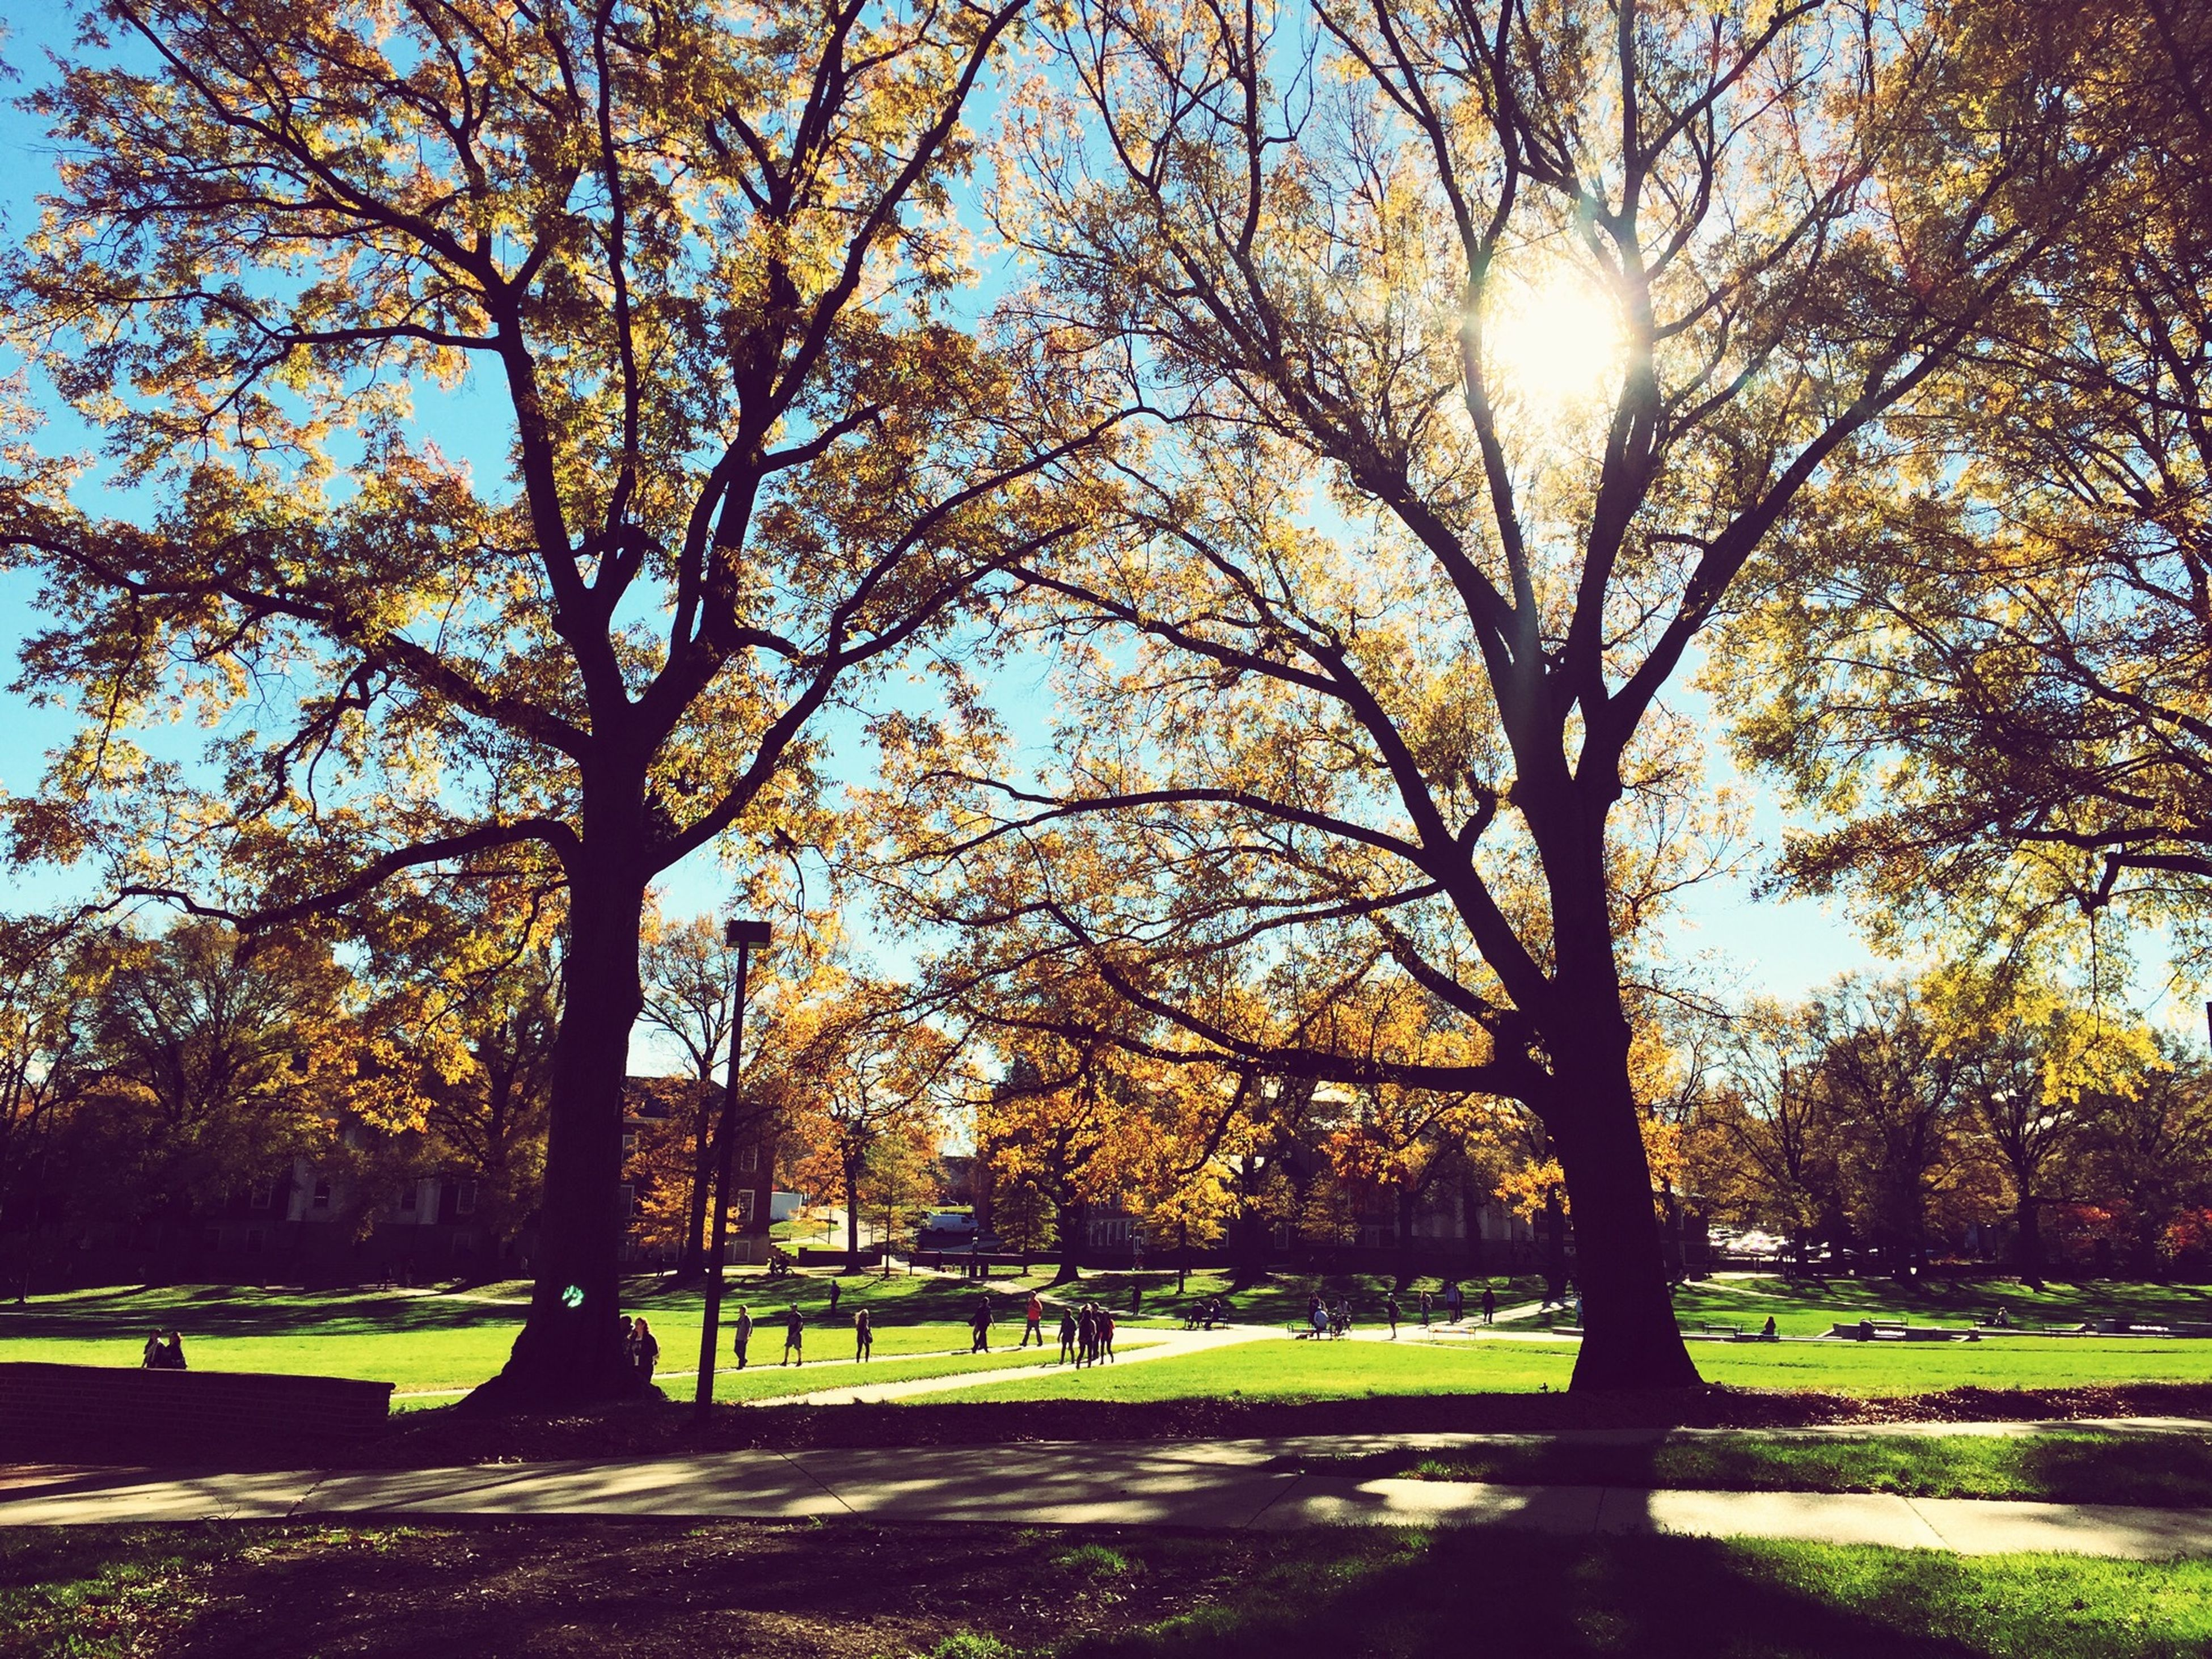 tree, sun, sunlight, park - man made space, sunbeam, grass, tranquility, tree trunk, branch, tranquil scene, lens flare, nature, growth, sky, shadow, scenics, beauty in nature, park, sunny, bench